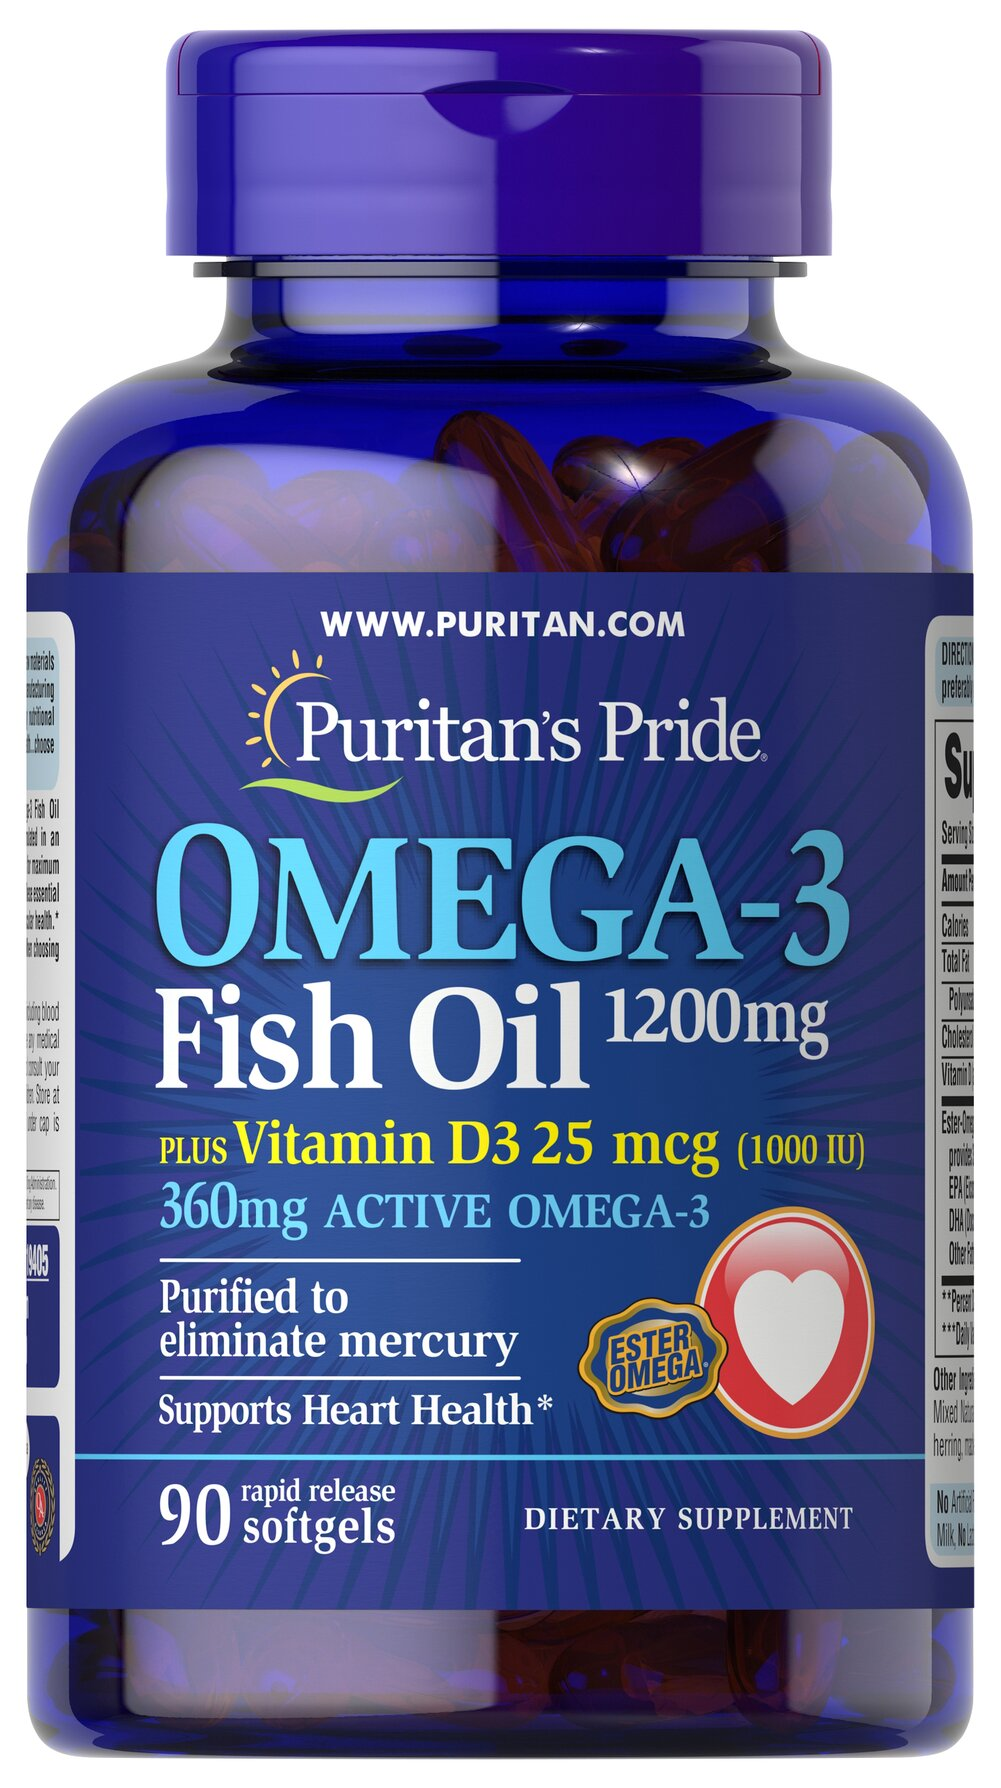 Omega 3 Fish Oil 1200 mg  plus Vitamin D3 1000 IU <p>Omega-3 Fish Oil– a highly concentrated and purified fish oil selected from the finest deep sea, cold water fish combined with 1000 IU of Vitamin D3 in one convenient coated softgel.</p> 90 Softgels 1200 mg/1000 IU $19.99